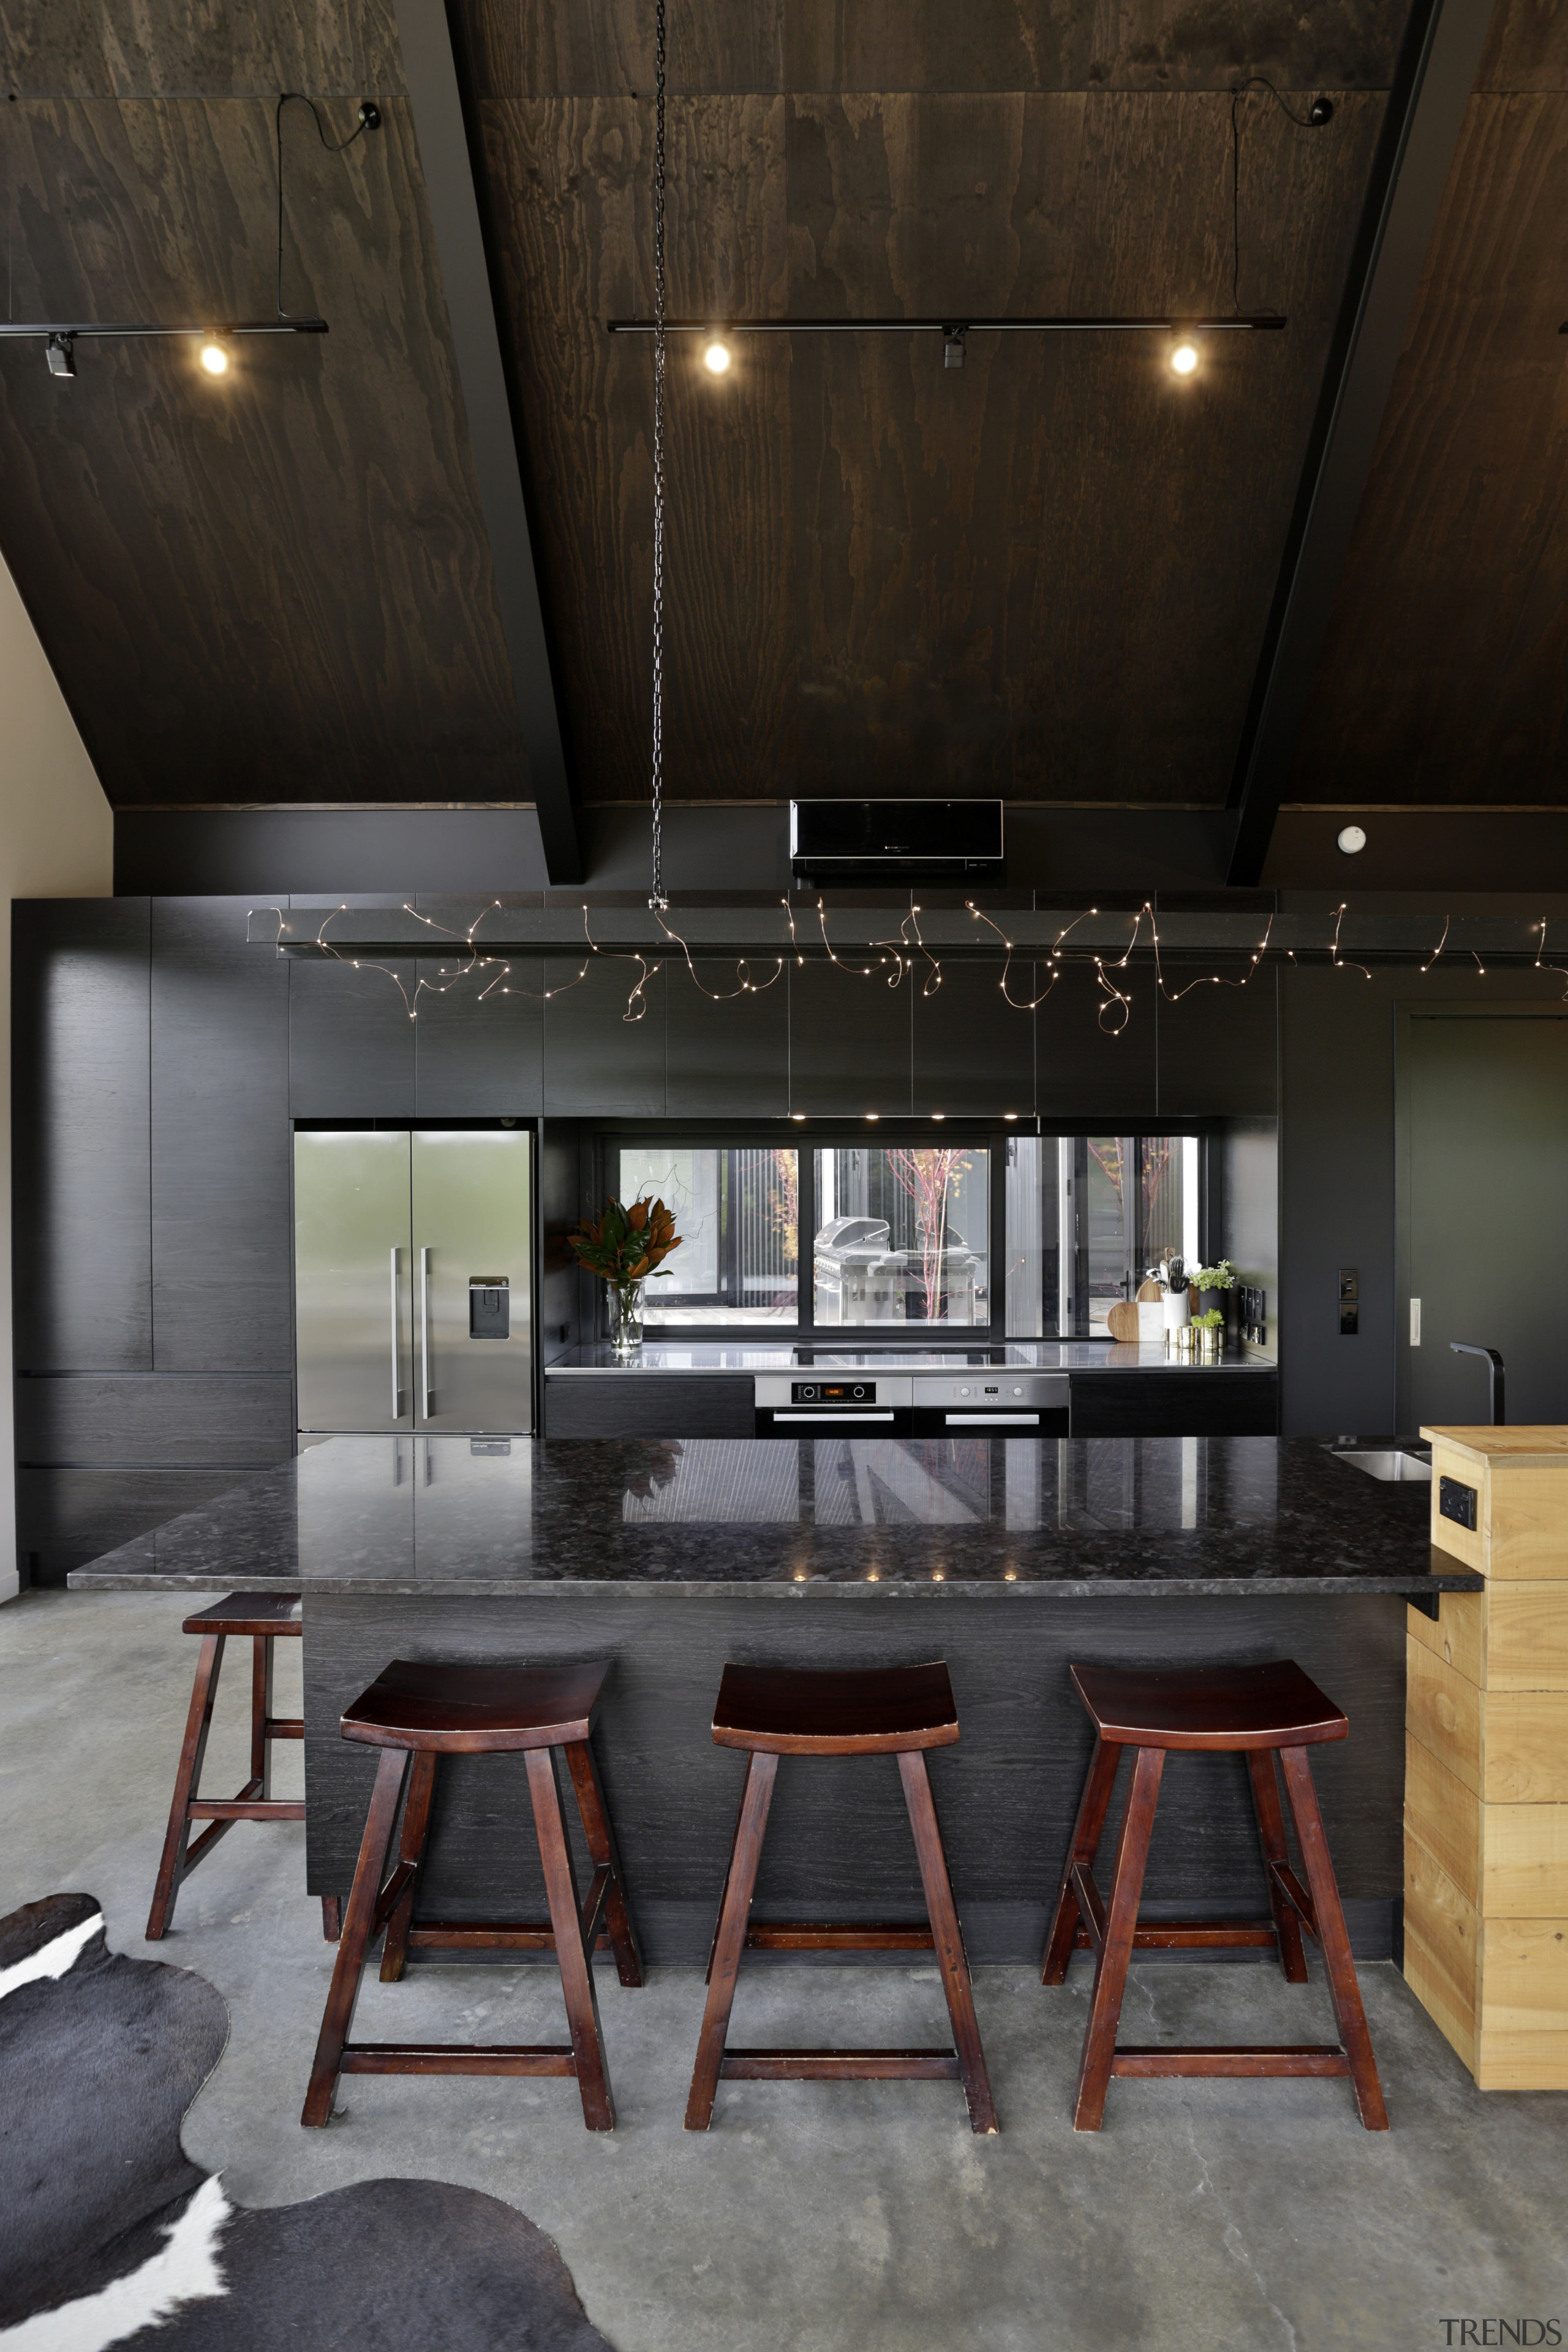 For this kitchen by Kyla Hunt of Carlielle architecture, ceiling, countertop, house, interior design, kitchen, loft, table, black